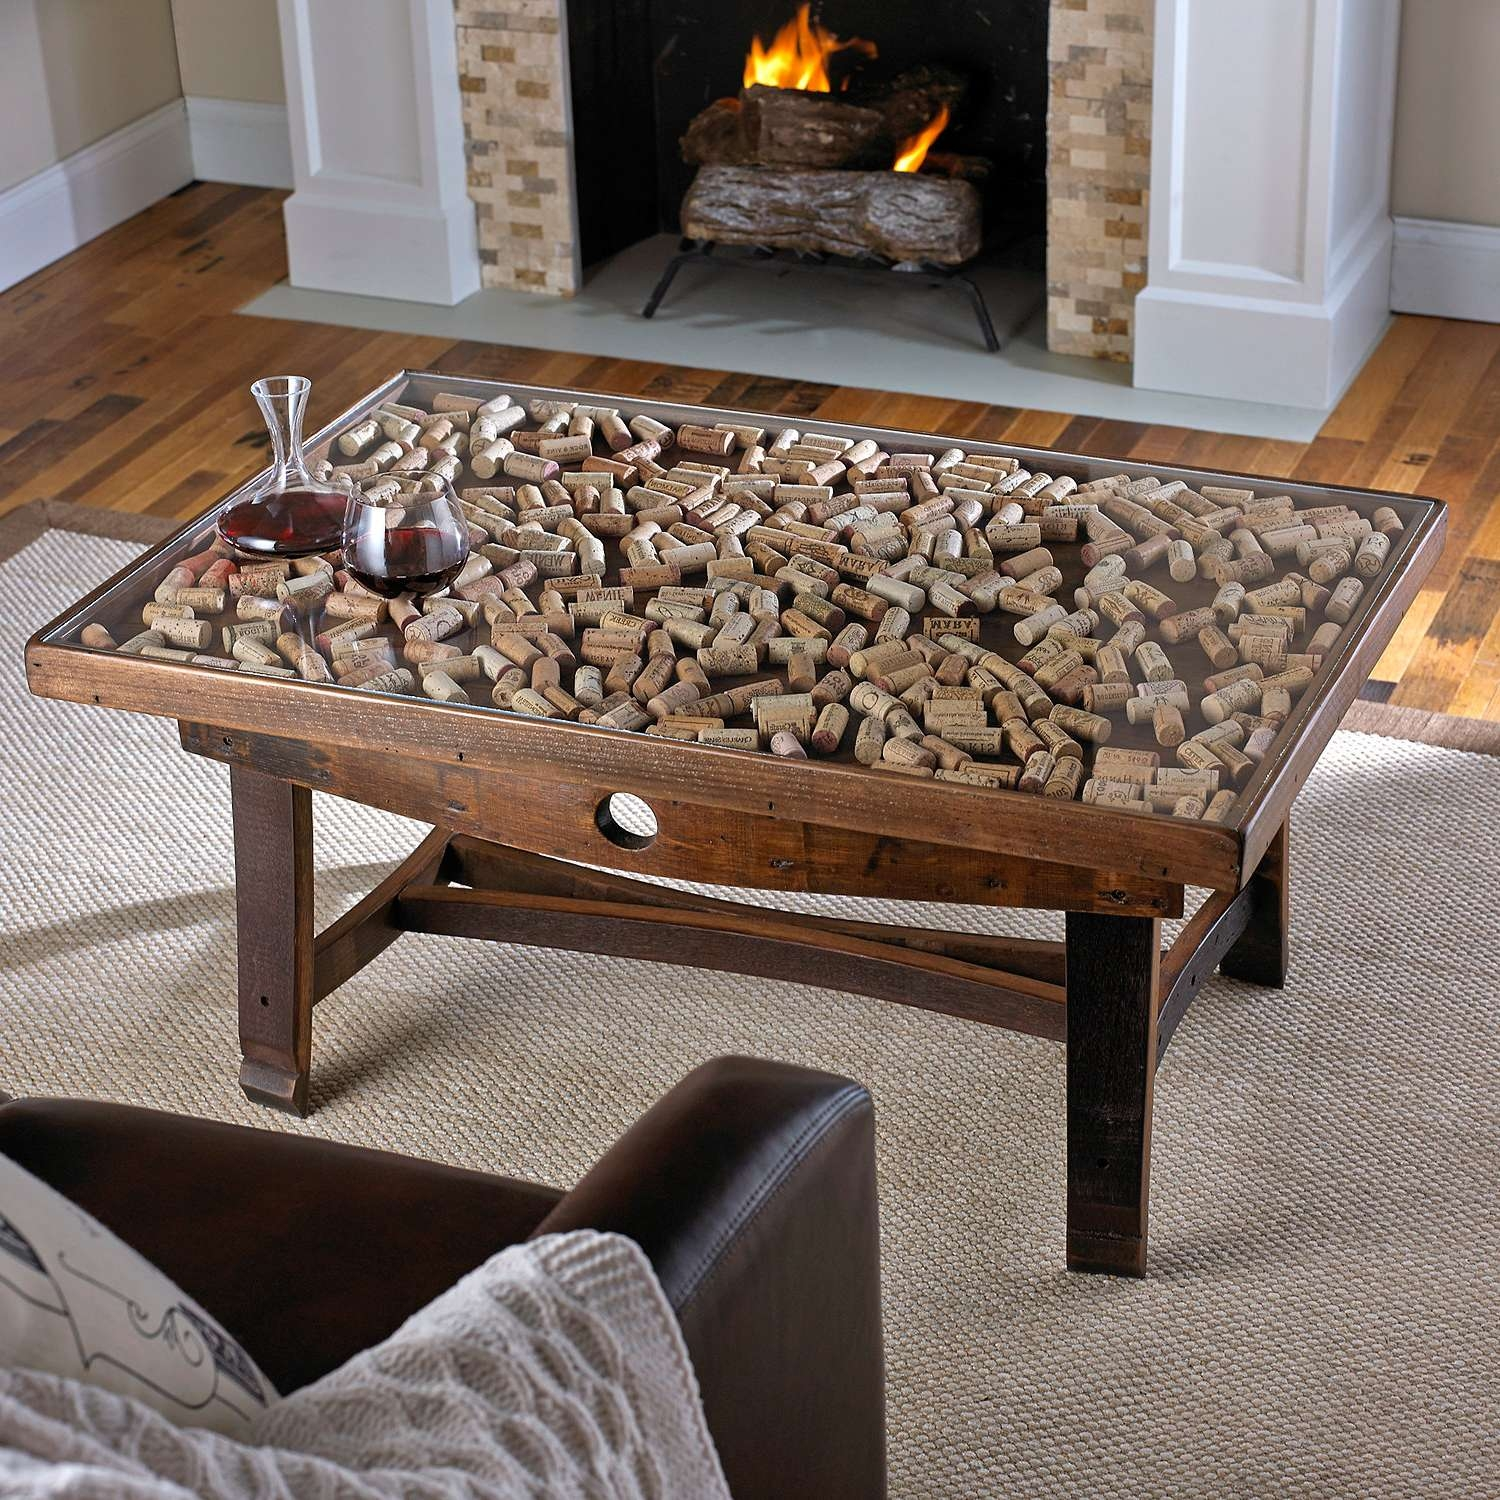 Popular Glass Top Display Coffee Tables With Drawers For Display Top Coffee Table With Barrel Stave Legs Wine Glass Case (View 17 of 20)